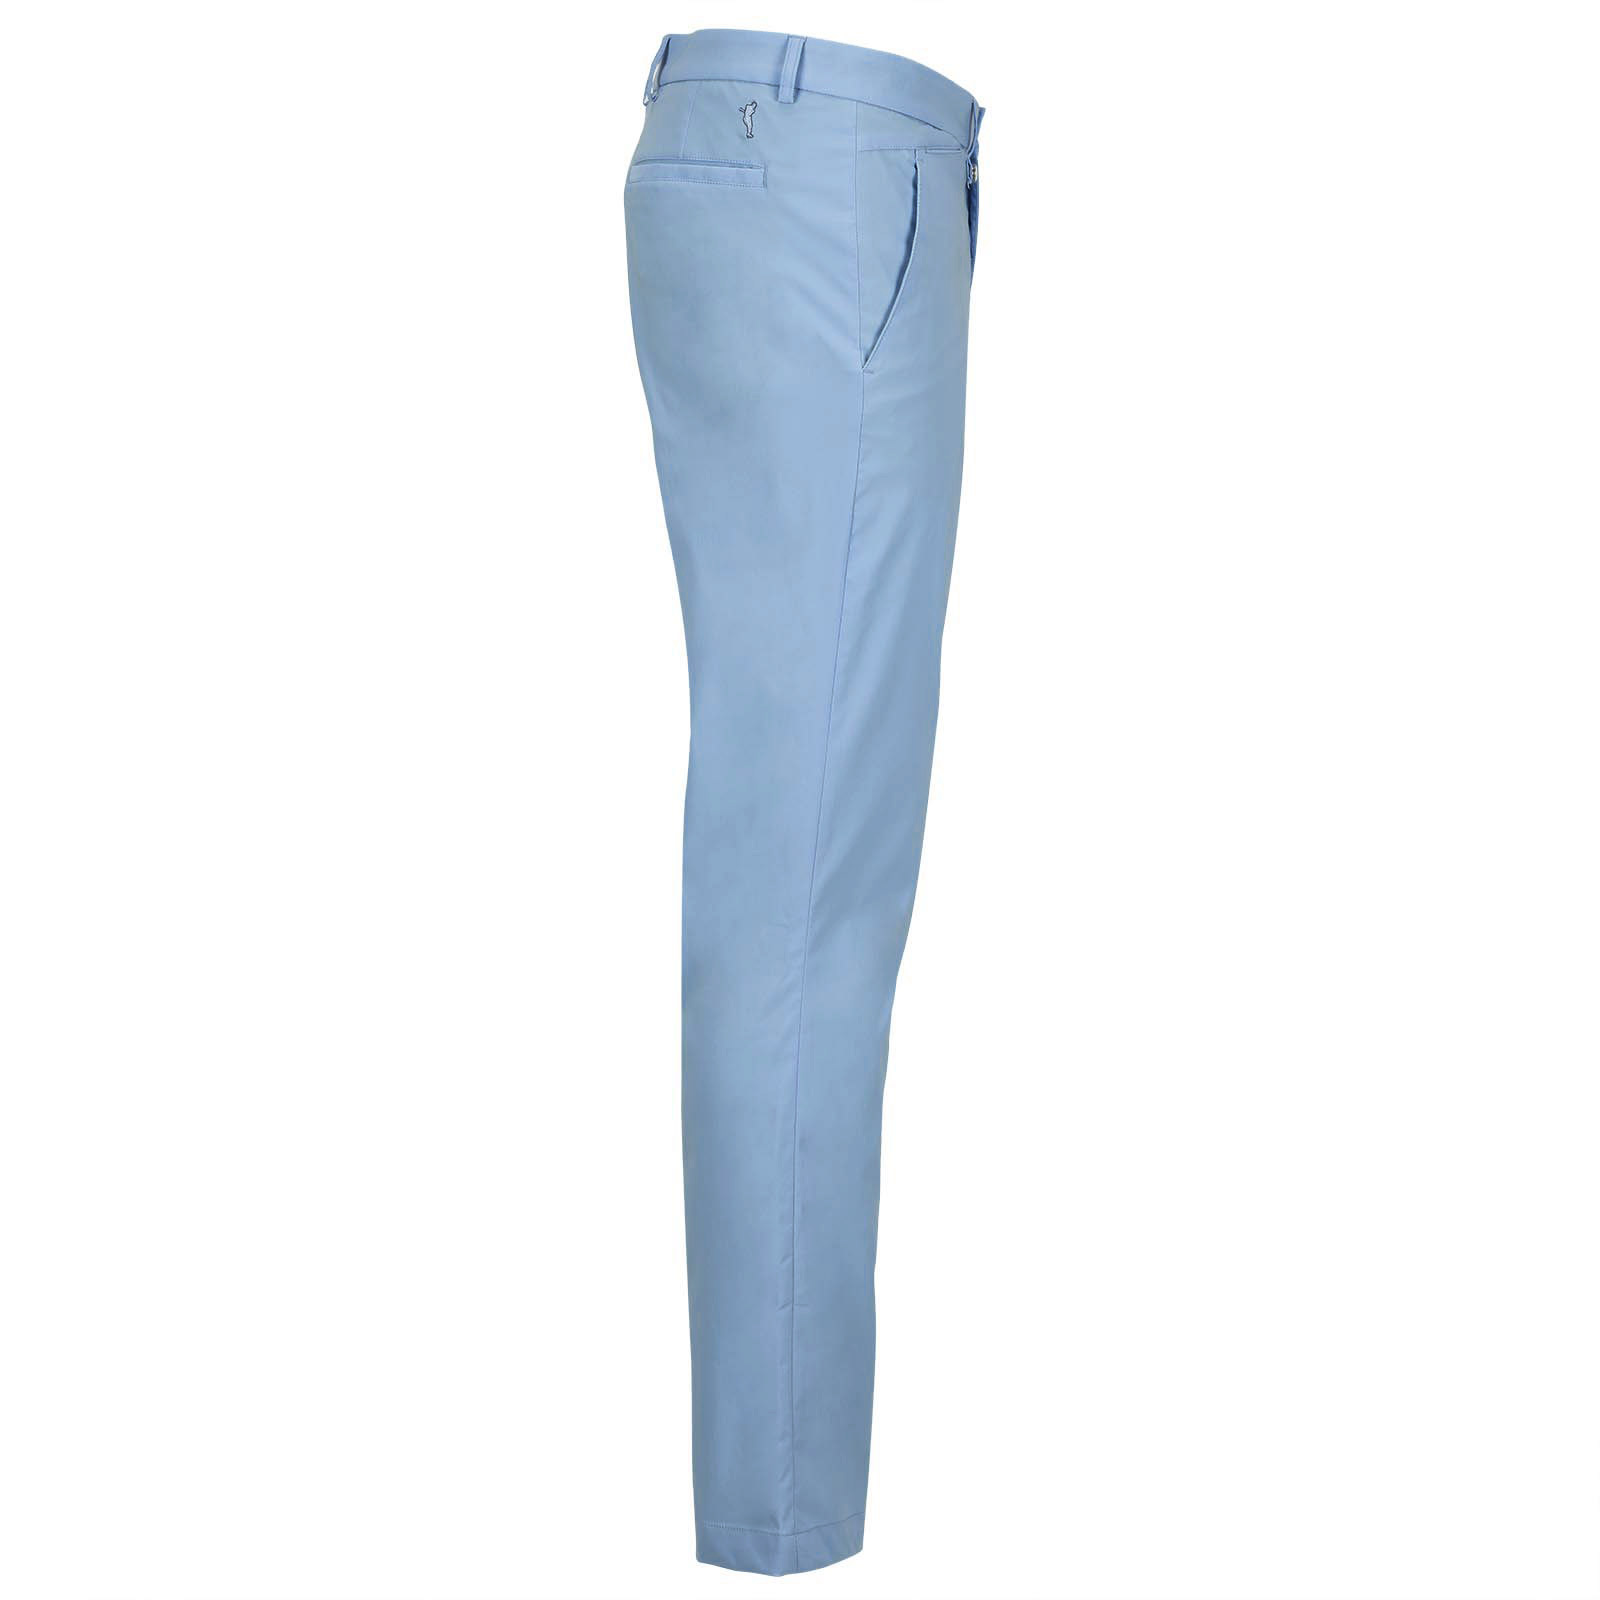 Herren Techno Stretch Golfhose mit Anti-UV-Funktion